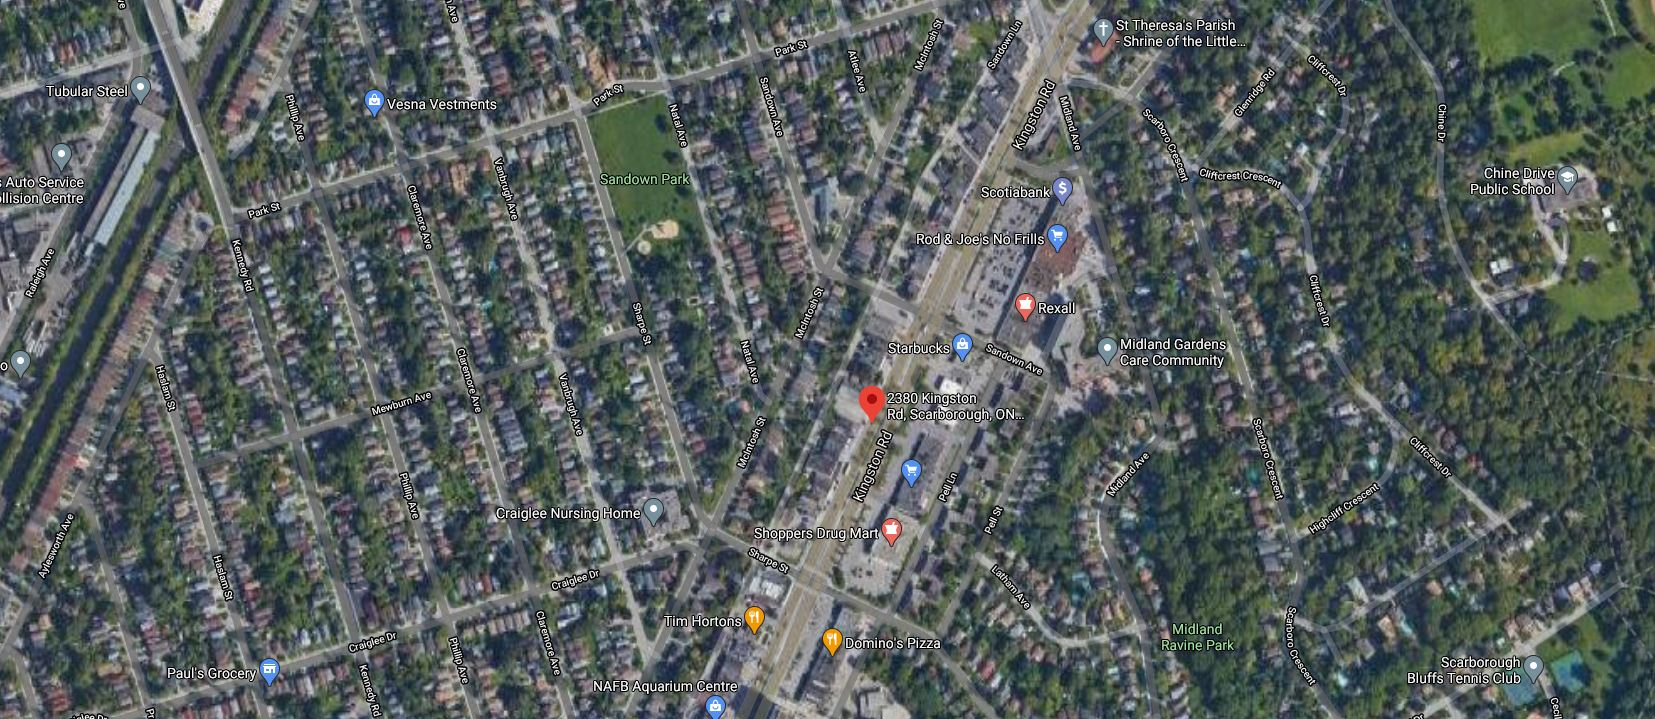 Aerial view locating 2380 Kingston Road, Toronto, image retrieved from Google Maps